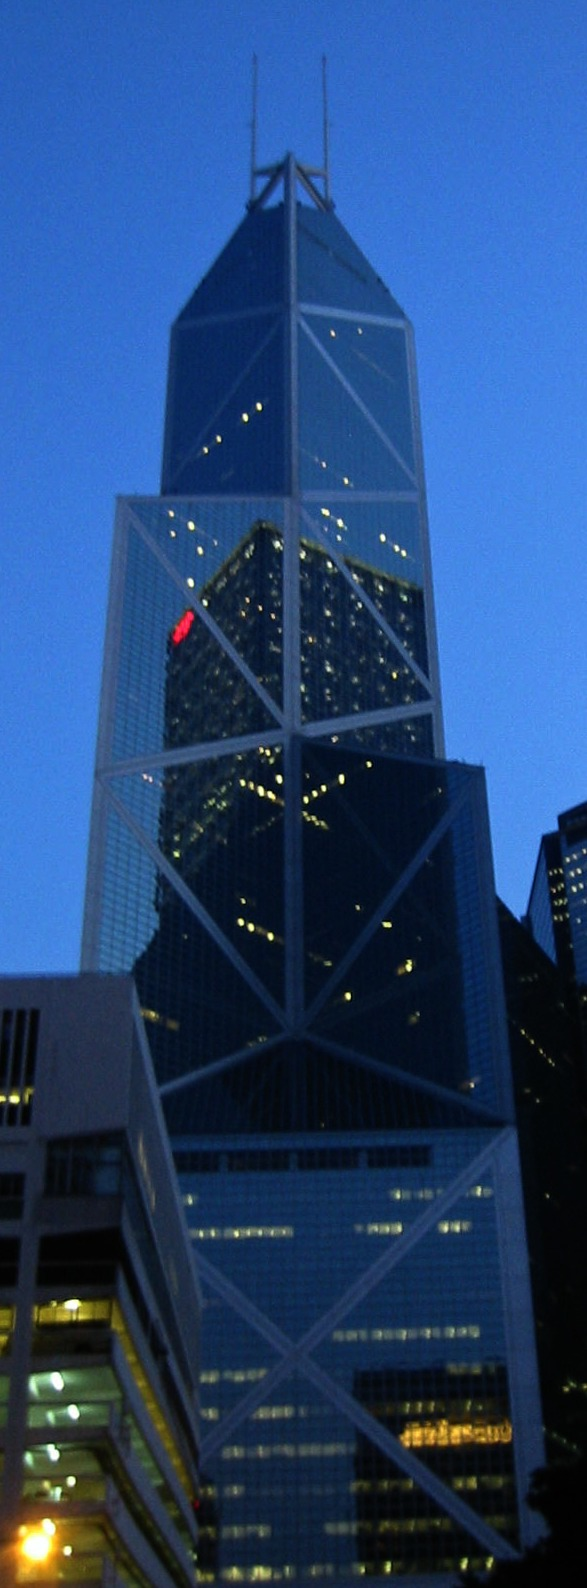 Bank of China at Night - Photo courtesy of Filzstift at Wikimedia Commons